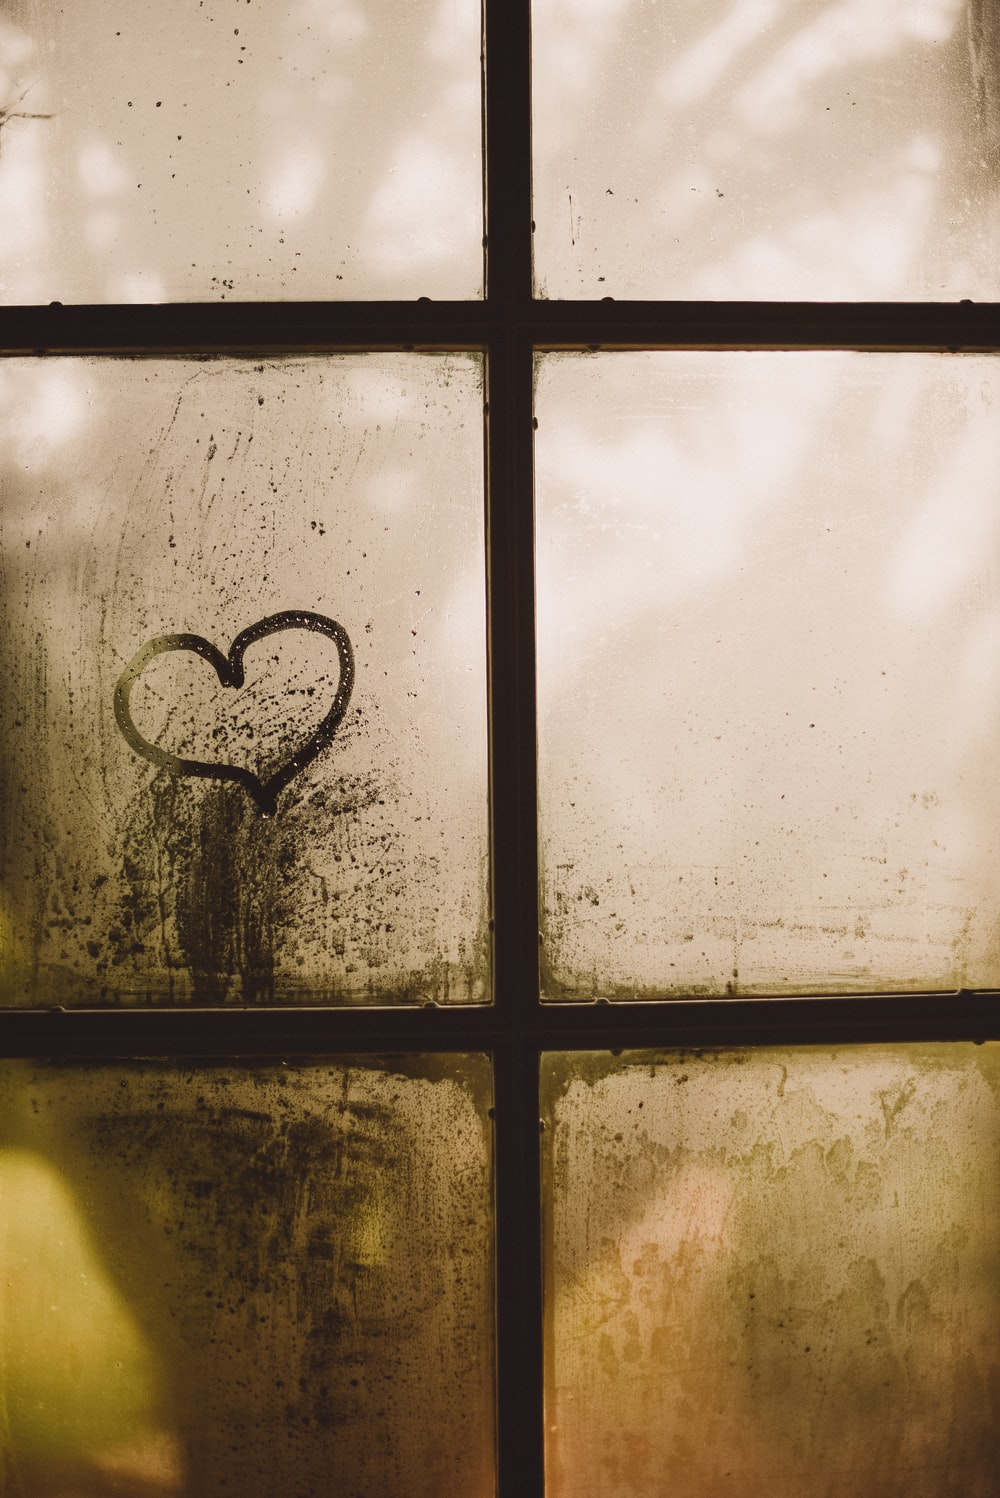 Someone has traced a heart with their finger onto this foggy window